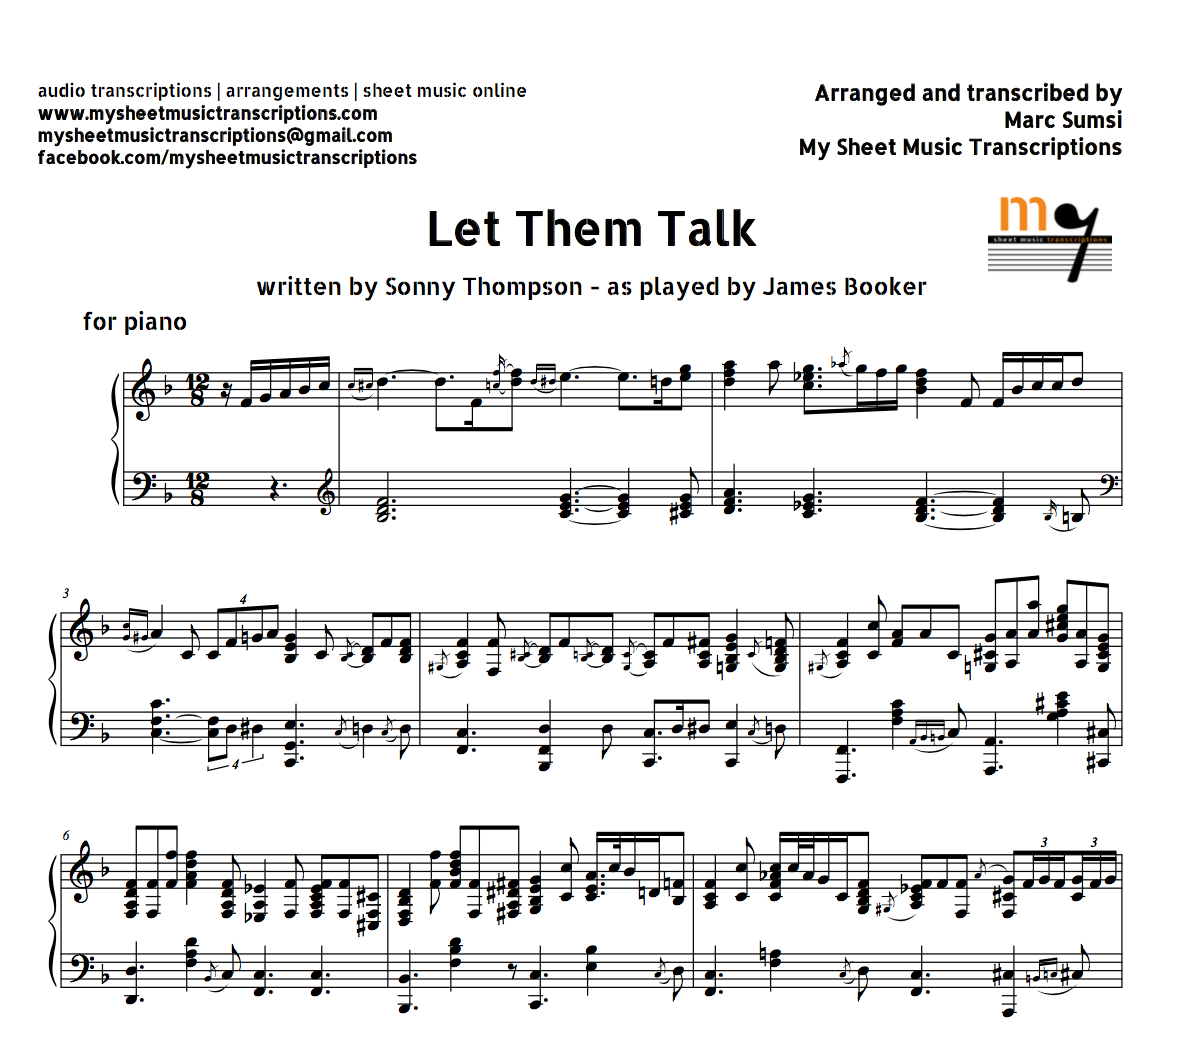 Besame Mucho Lyrics Sheet Music: (Sonny Thompson) As Played By James Booker